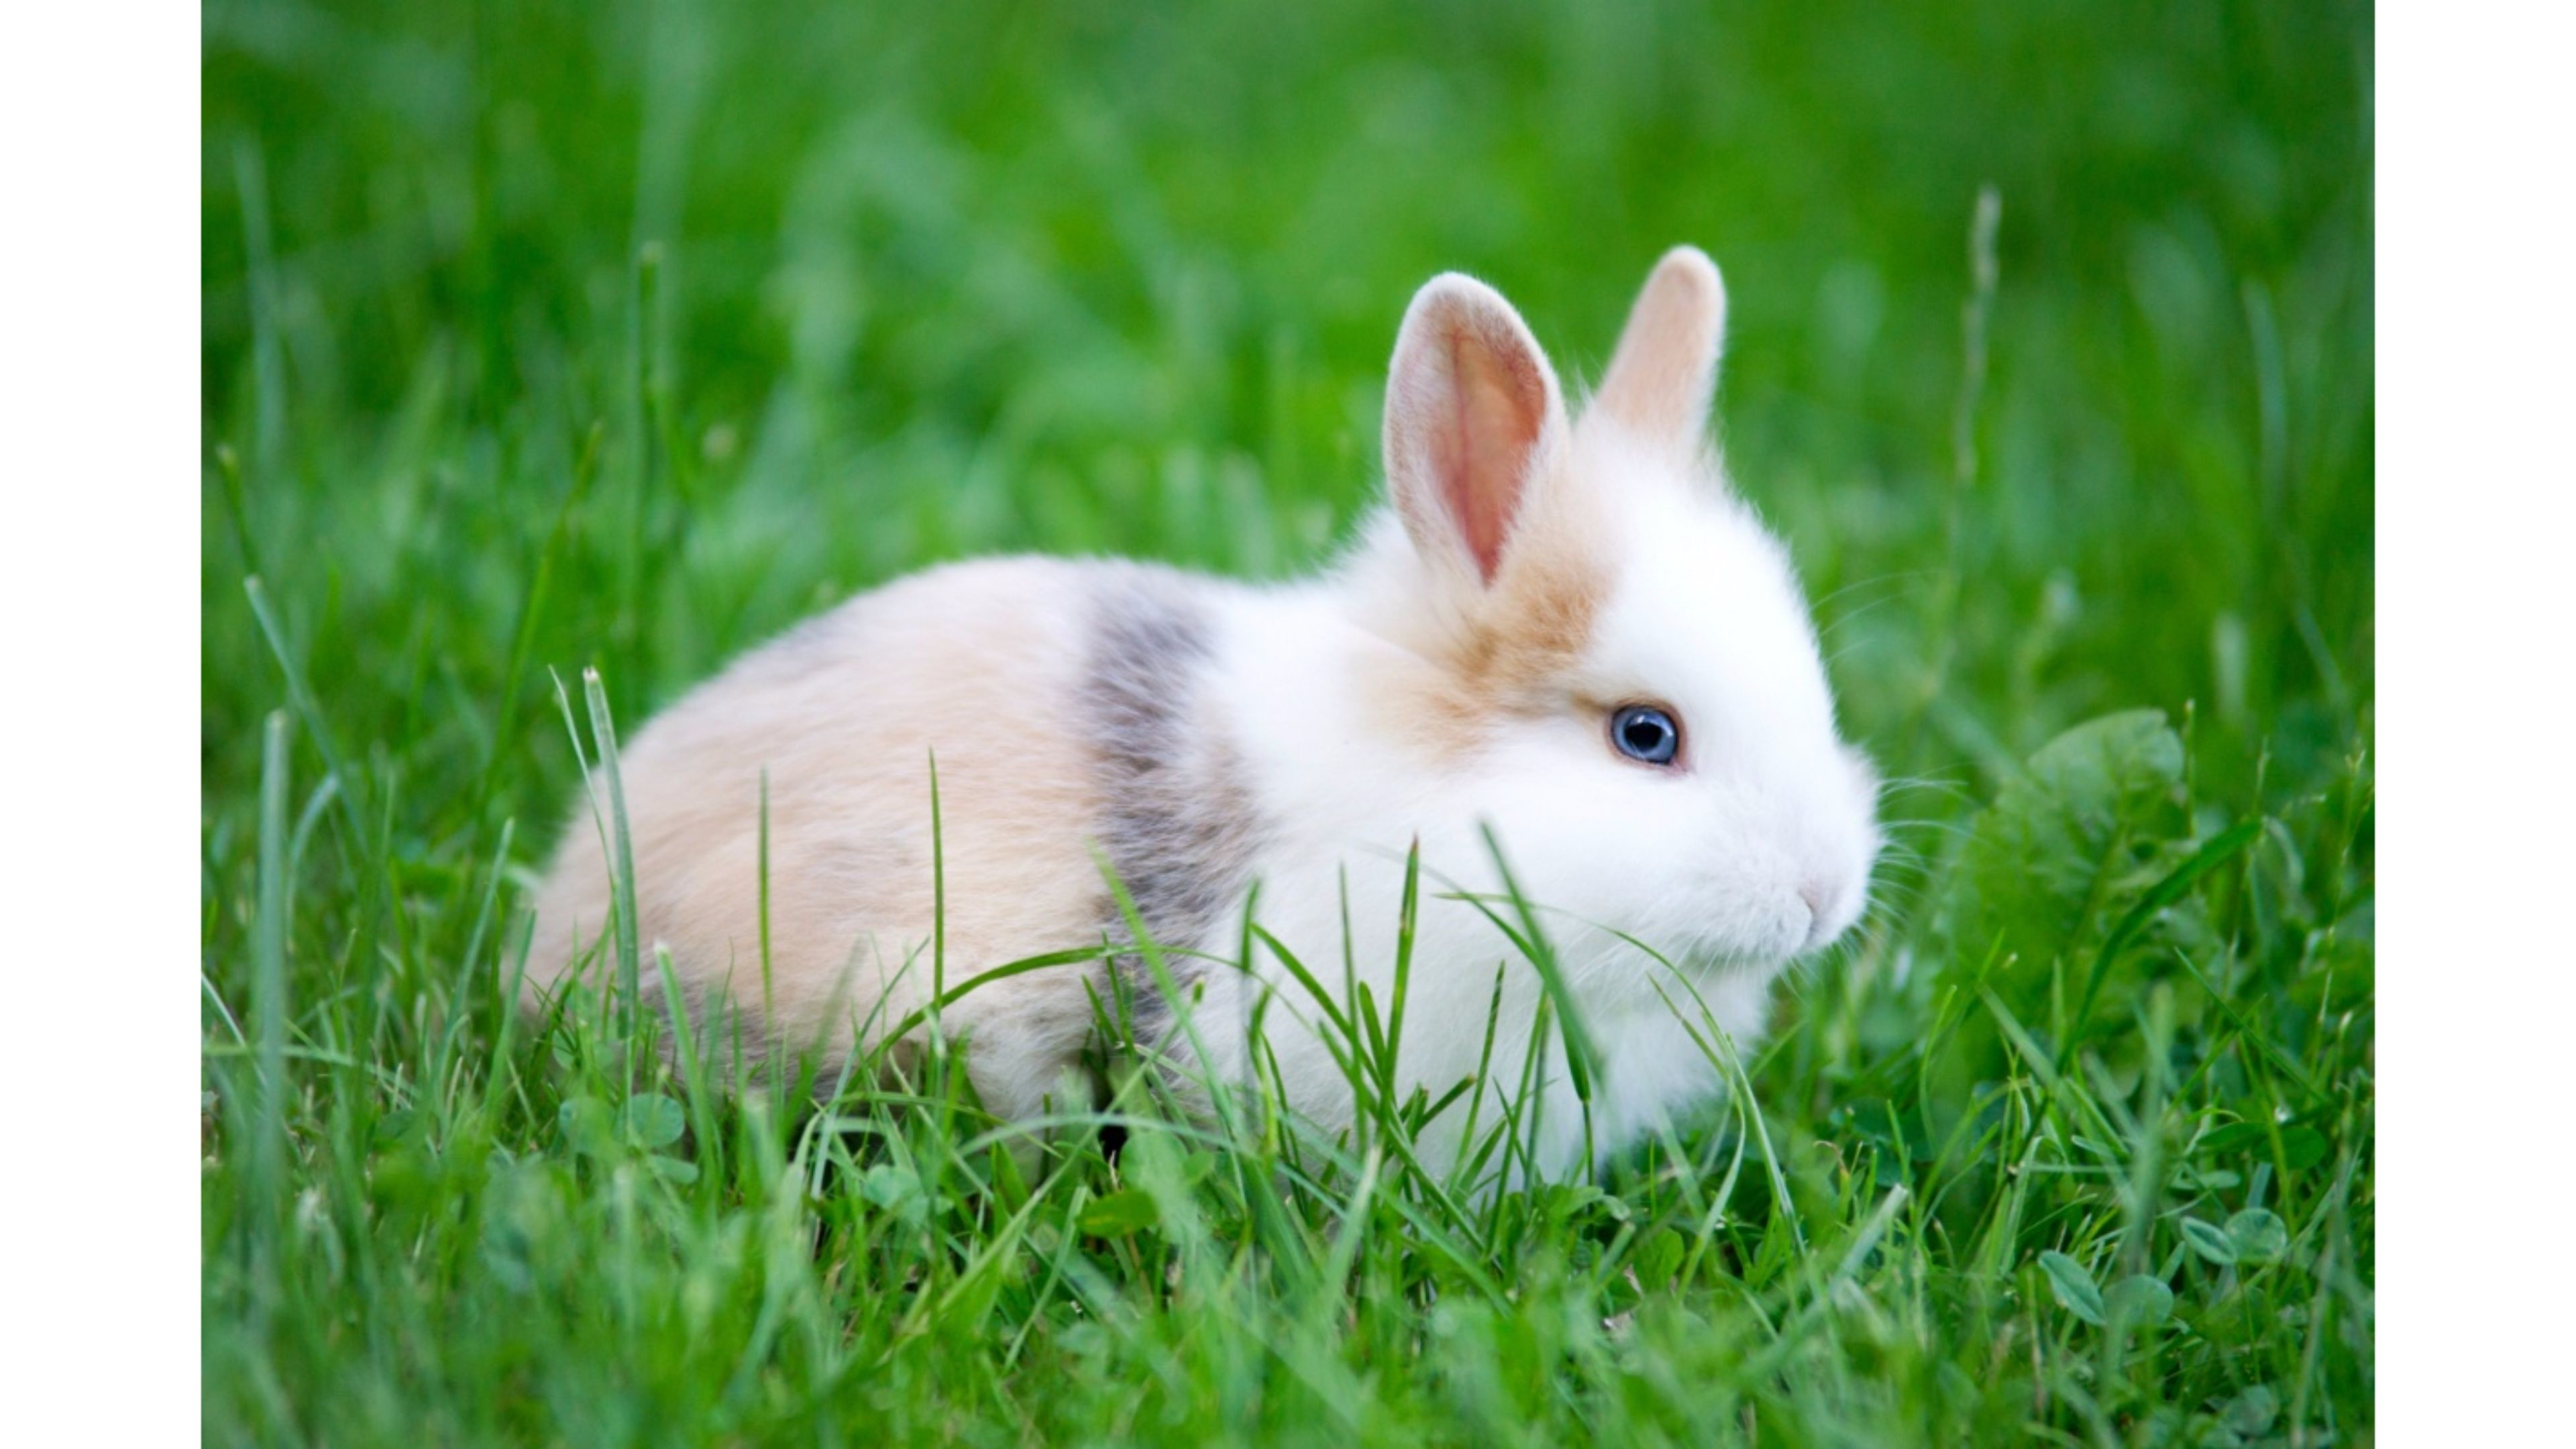 Cute White Baby Rabbits Wallpapers Wallpapers Of Rabbits 72 Images